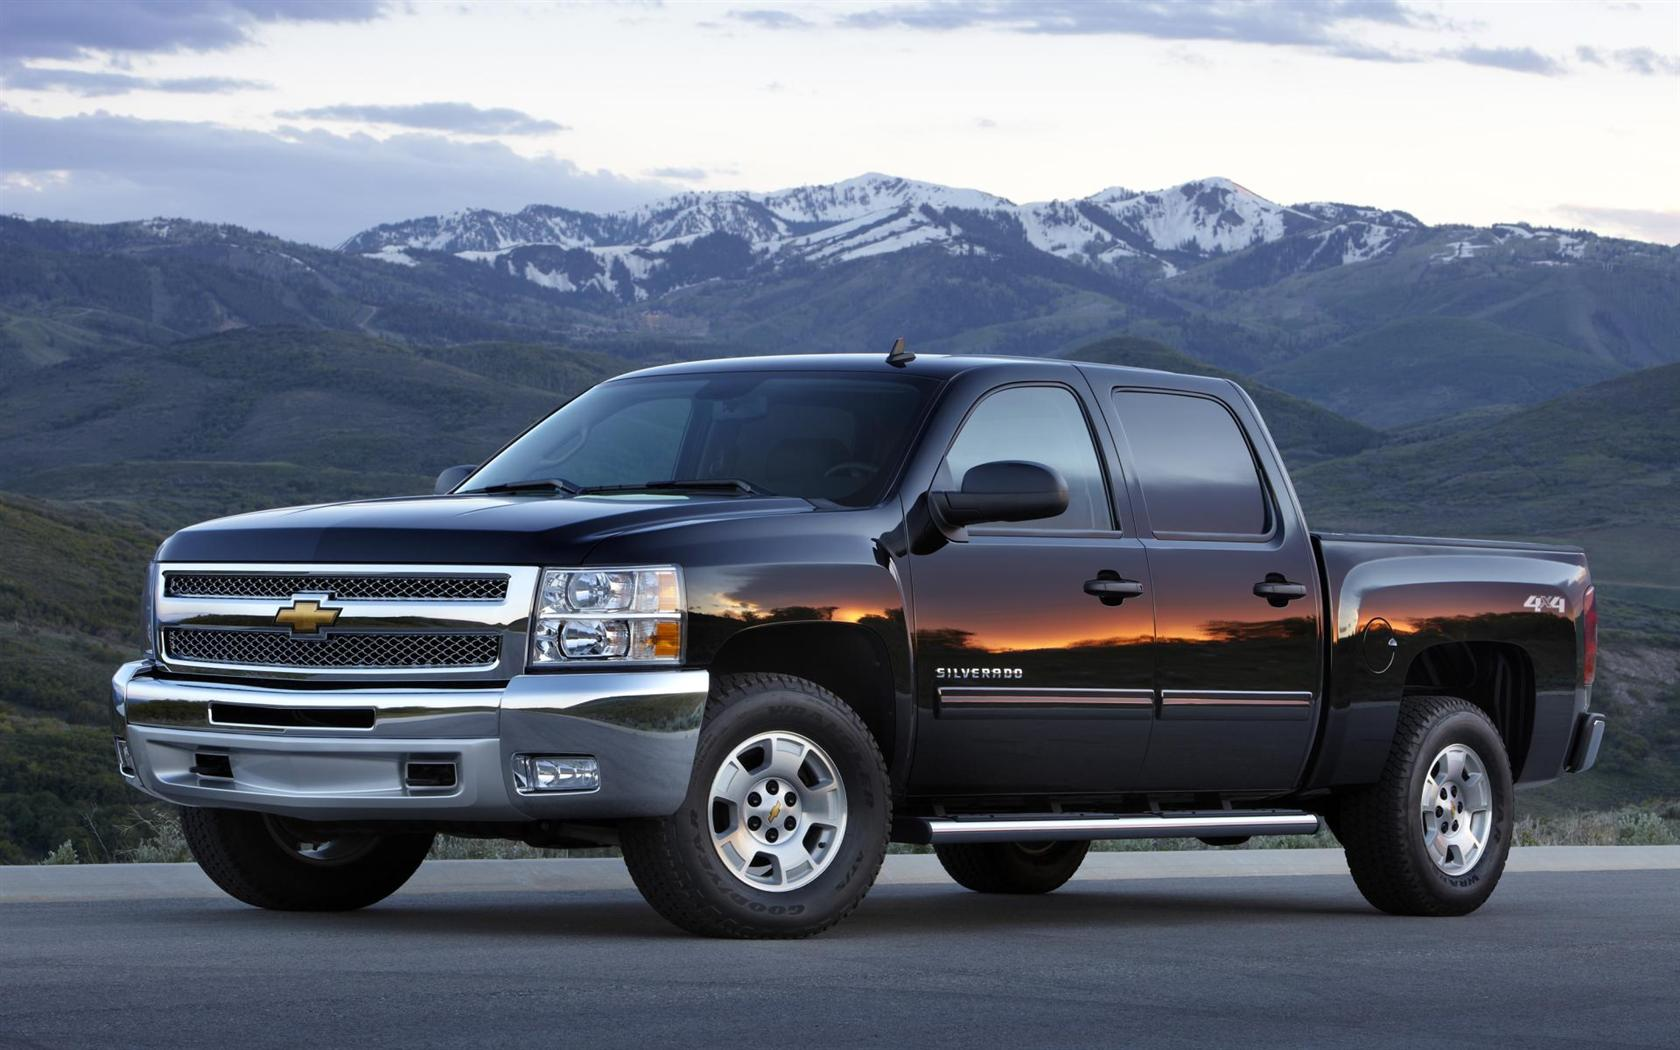 2013 chevrolet silverado 1500 images photo 2013 chevrolet silverado. Cars Review. Best American Auto & Cars Review